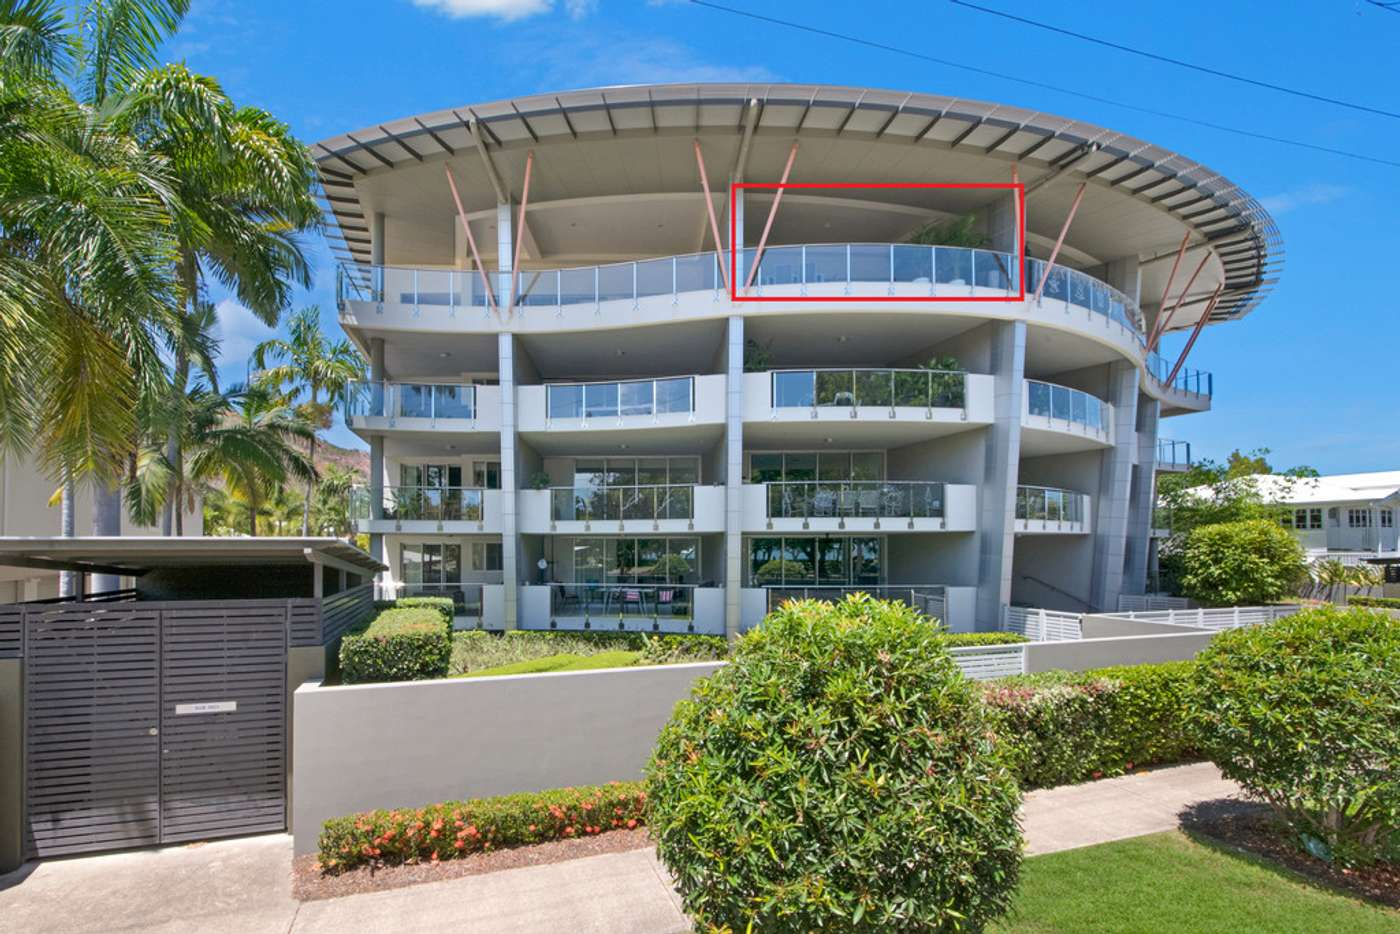 Main view of Homely apartment listing, 23/96-98 Mitchell Street, North Ward QLD 4810